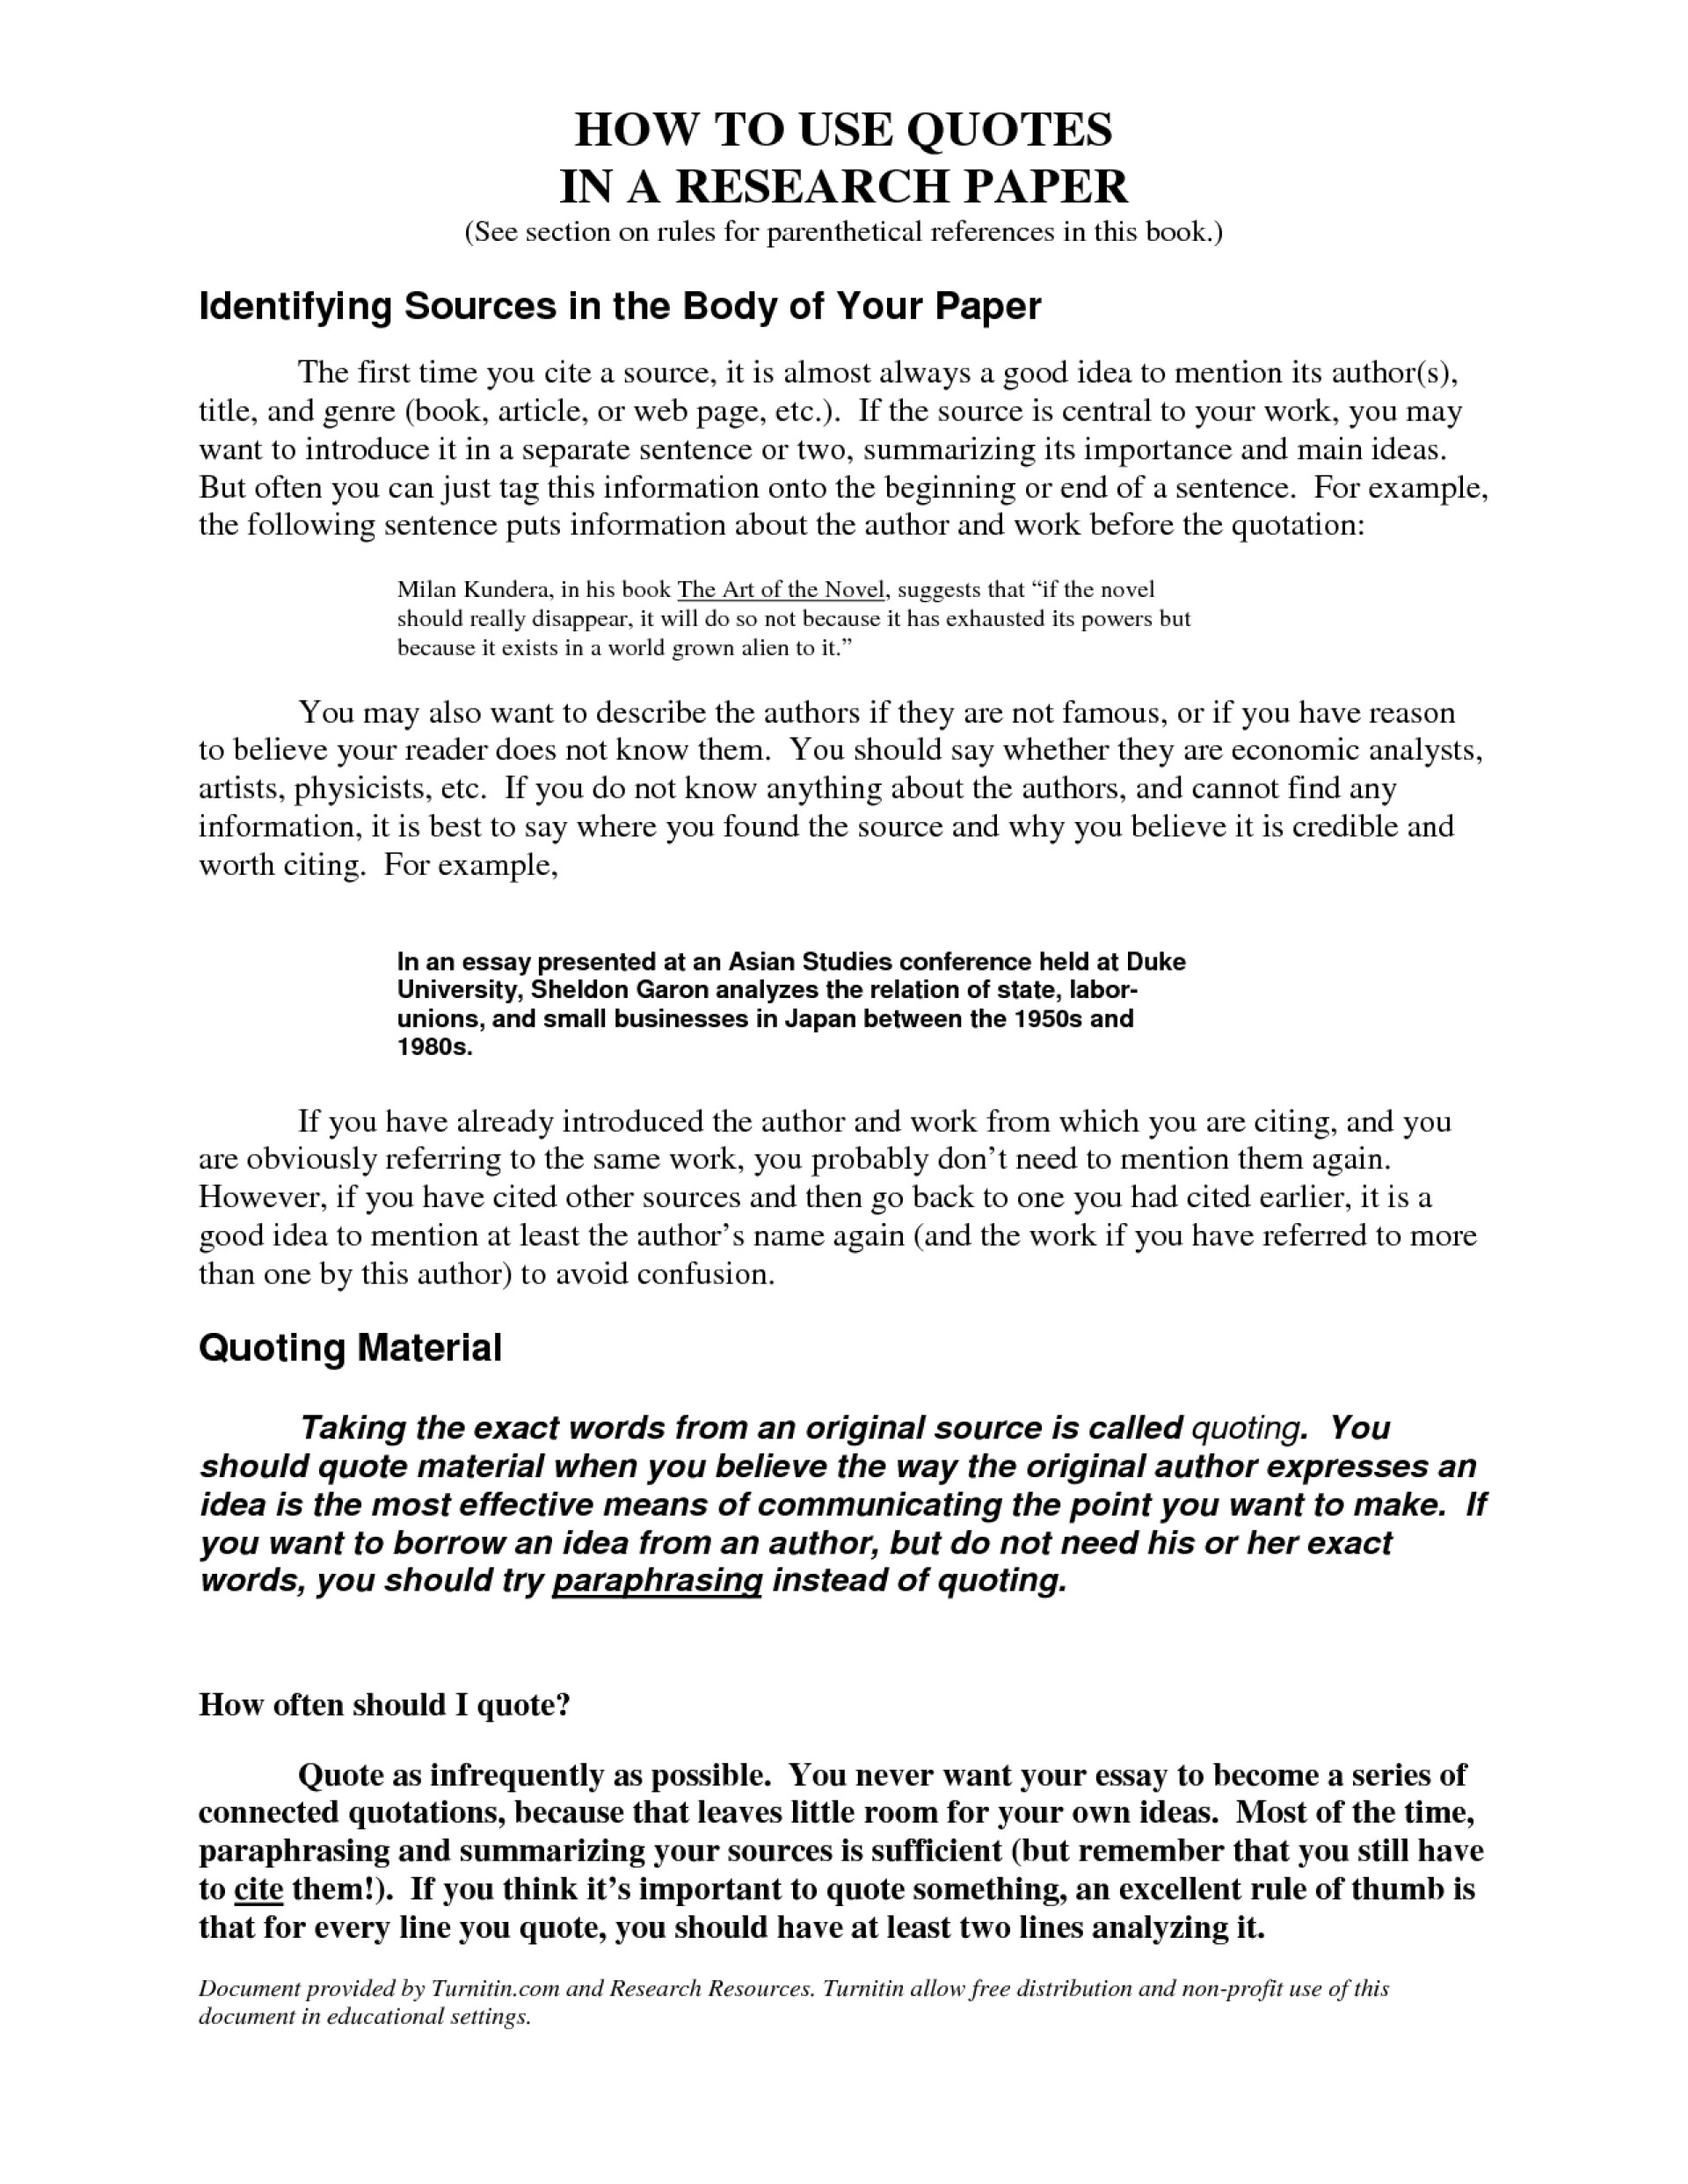 011 Best Solutions Of Writing Quotes In Essays Marvelous Embedding On Quotestopics Essay Example How To Quote Book Formidable A An Apa Style With Multiple Authors 1920